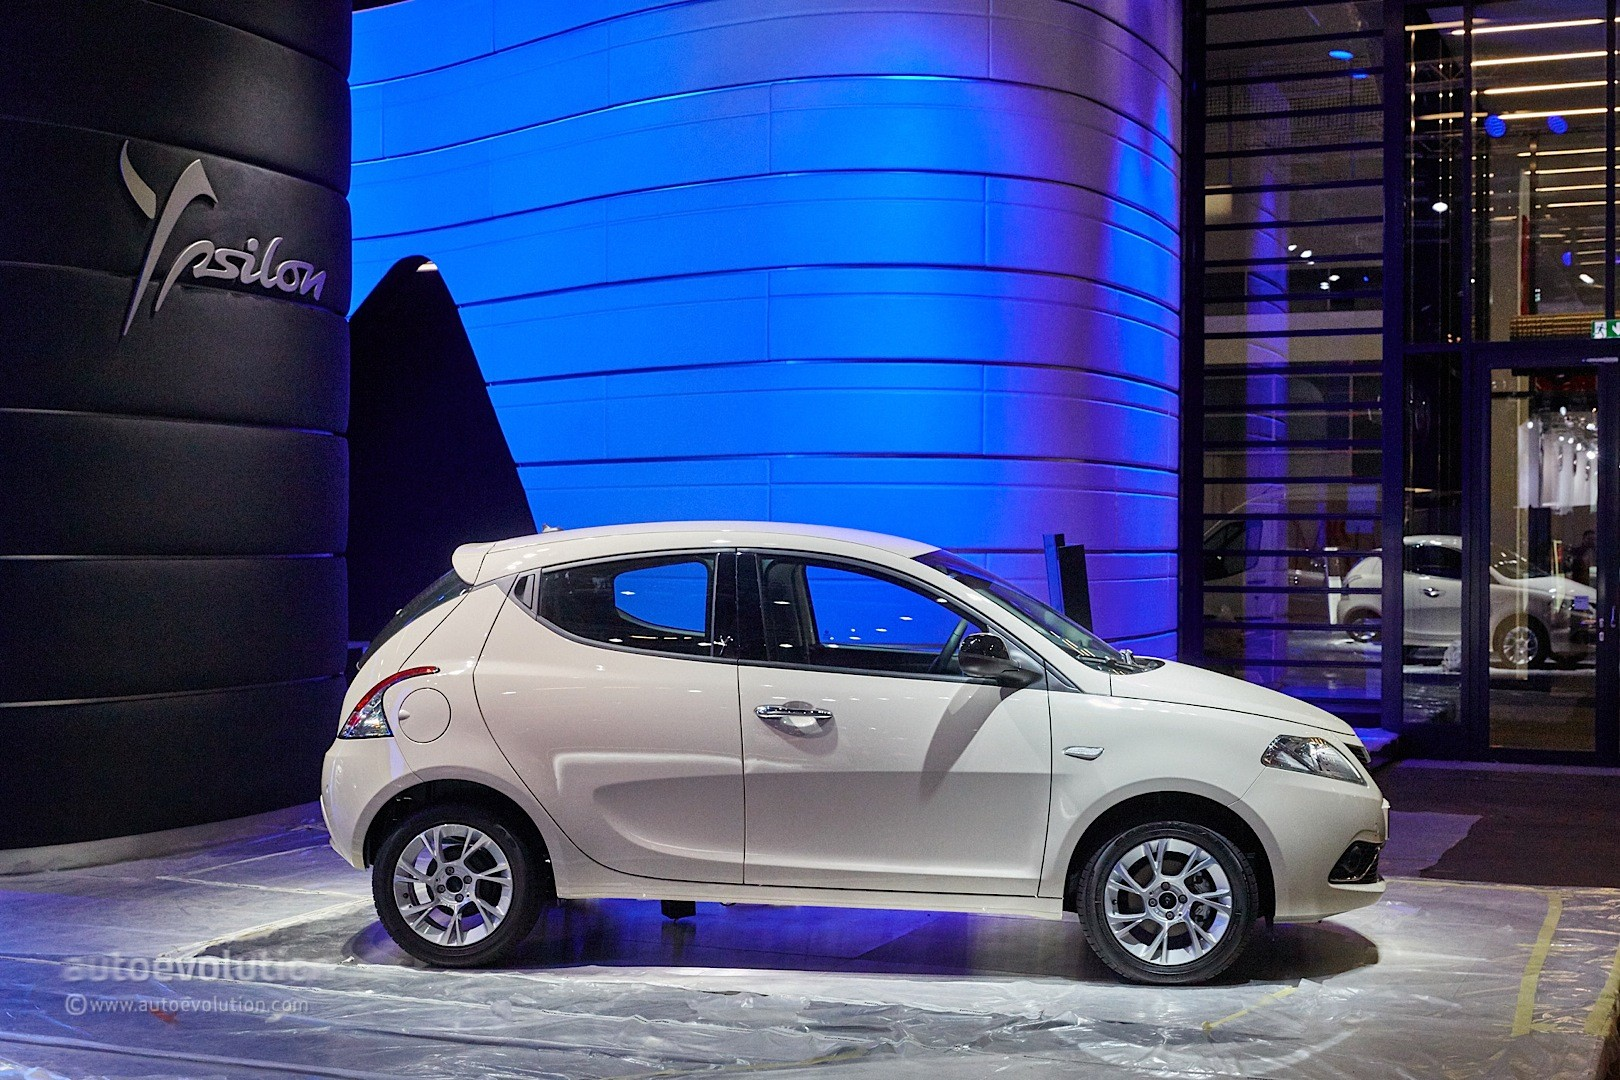 2018 Lancia Ypsilon BKini photo - 2